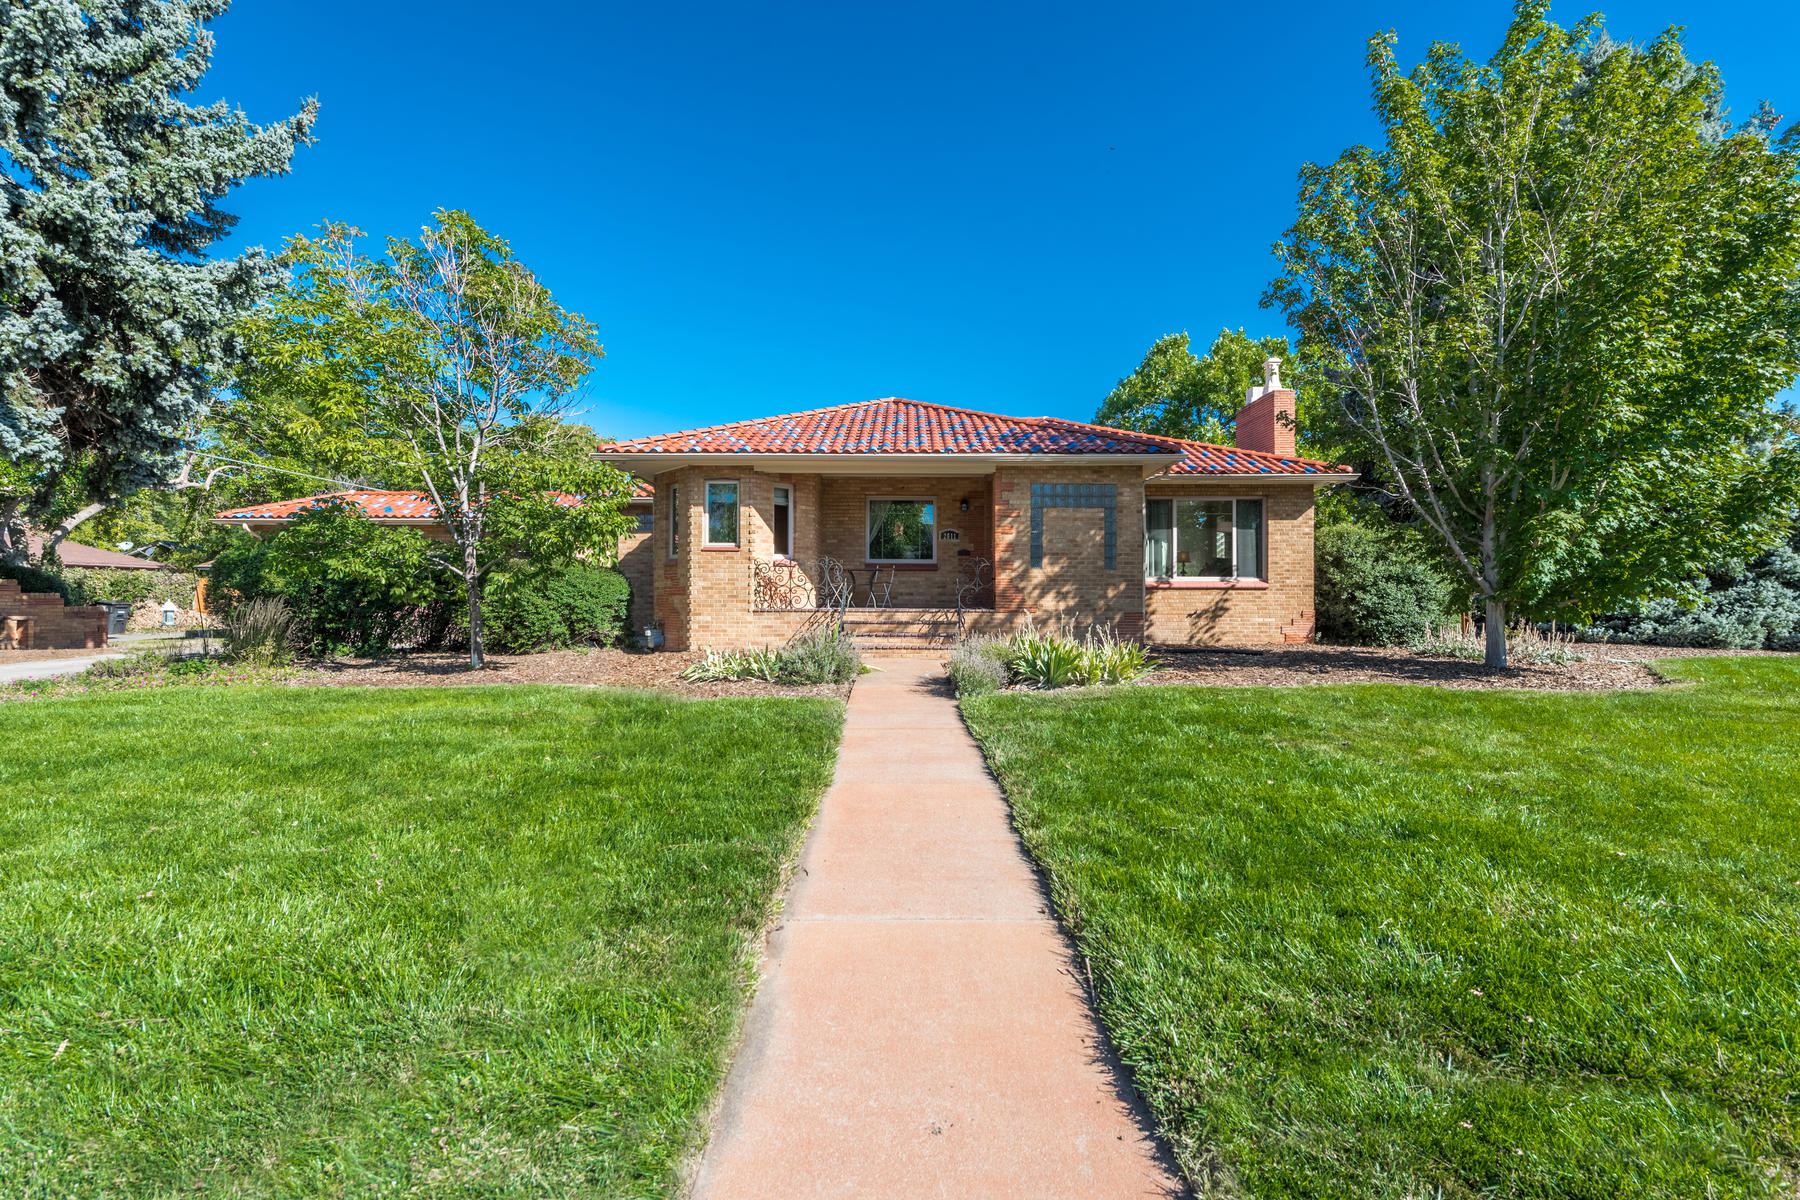 Single Family Home for Active at The new look and a new price represents a tremendous value! 2611 Leyden St Denver, Colorado 80207 United States